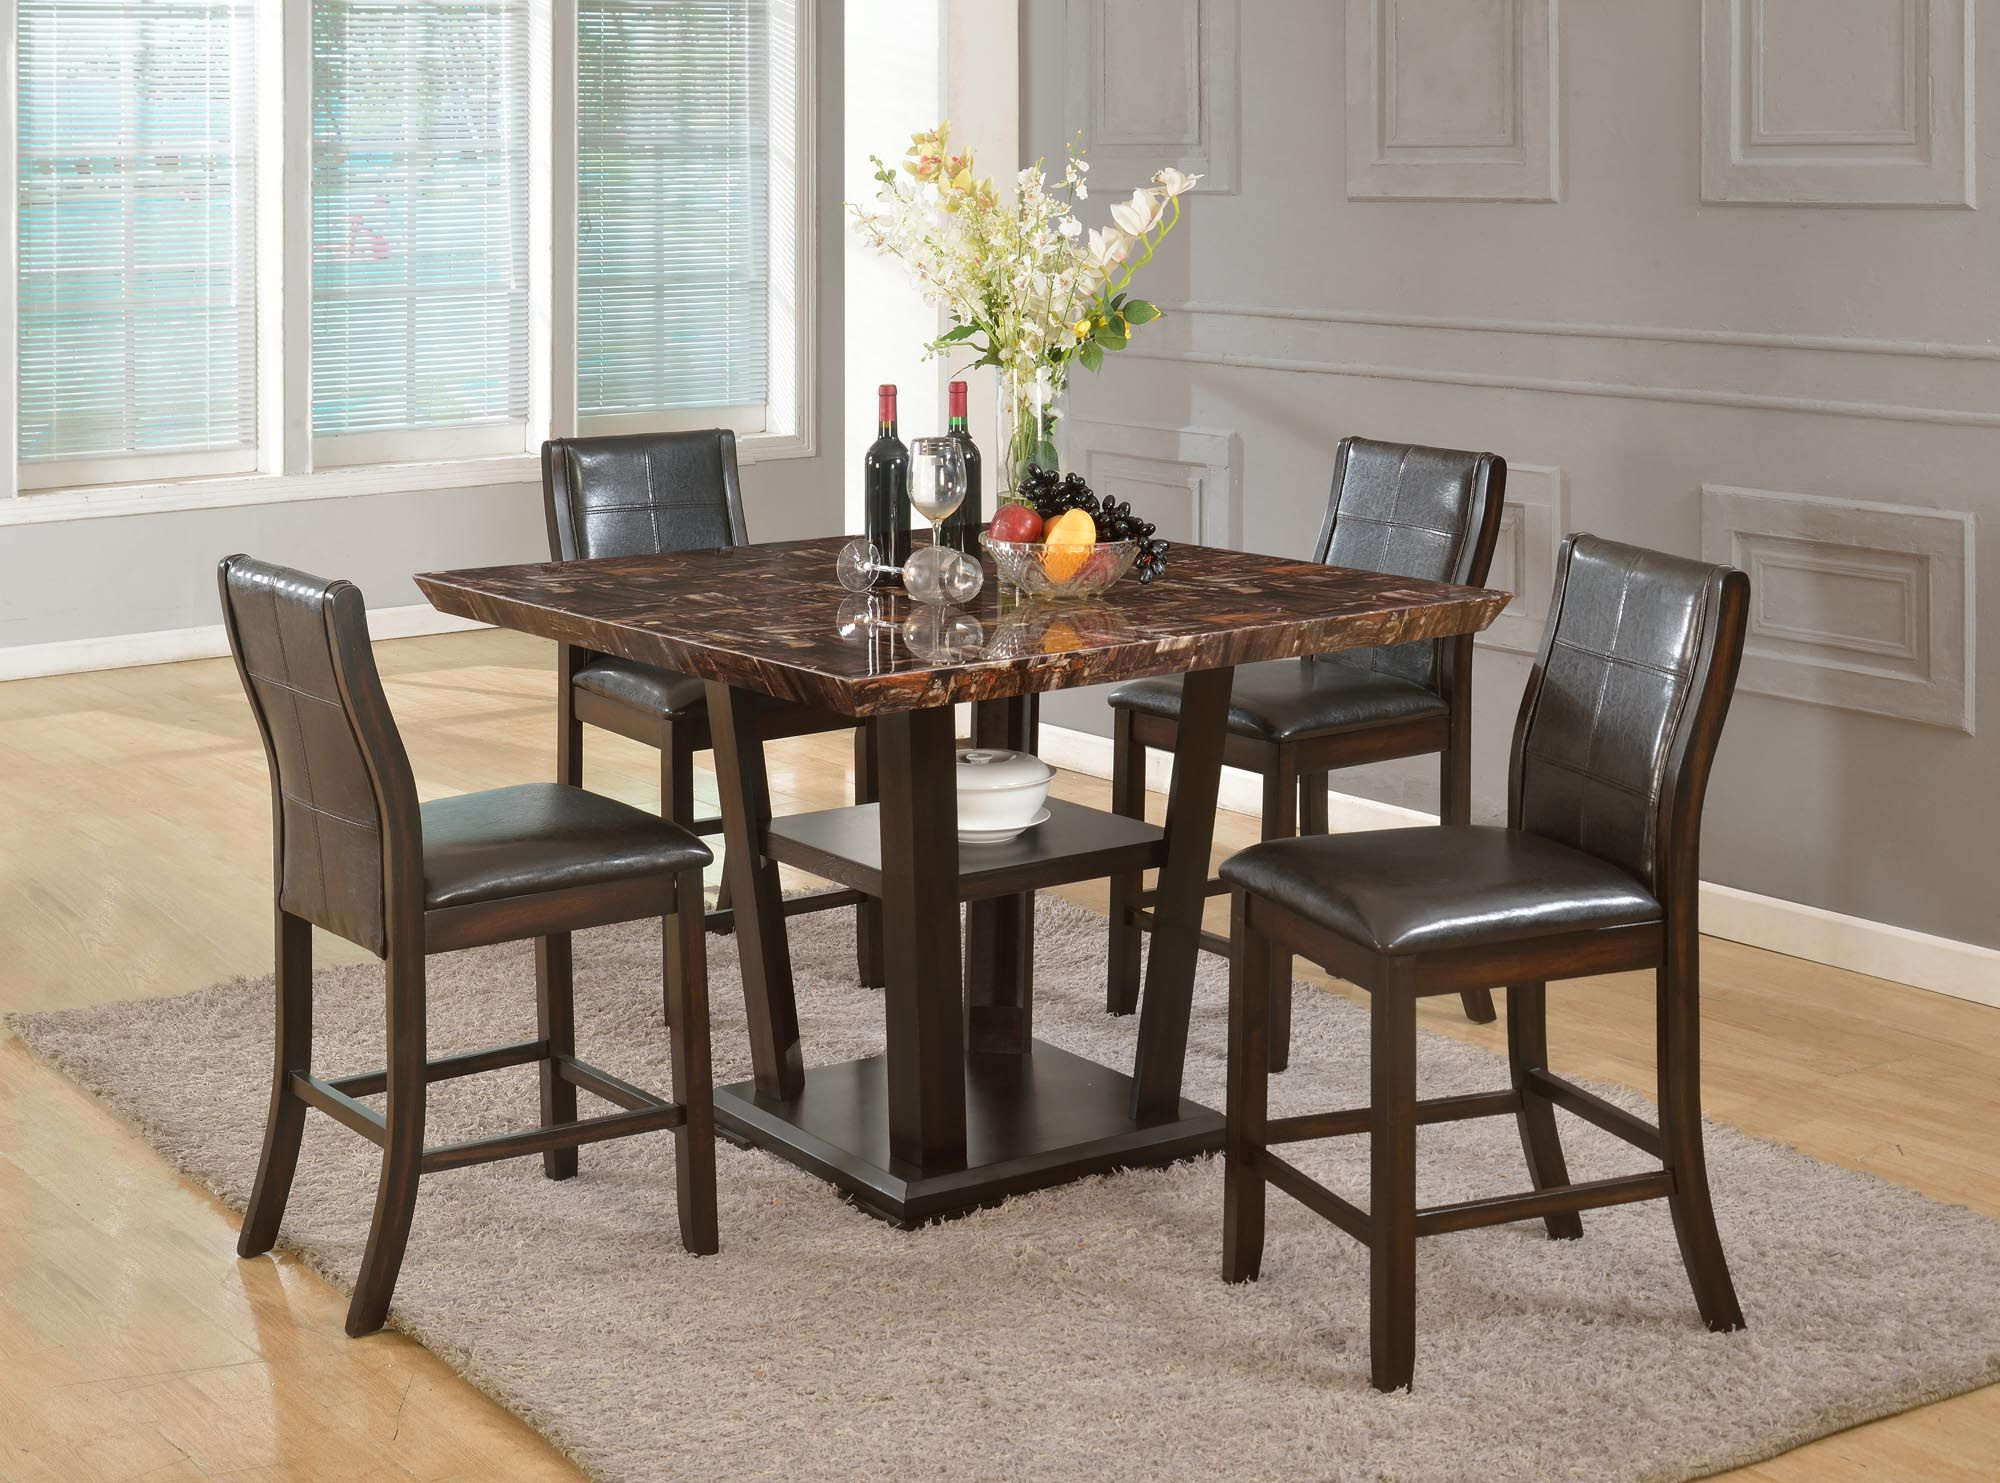 Well Known 5 Piece Counter Height Table And 4 Chairs Faux Marble Top In Inside Transitional 4 Seating Square Casual Dining Tables (View 30 of 30)